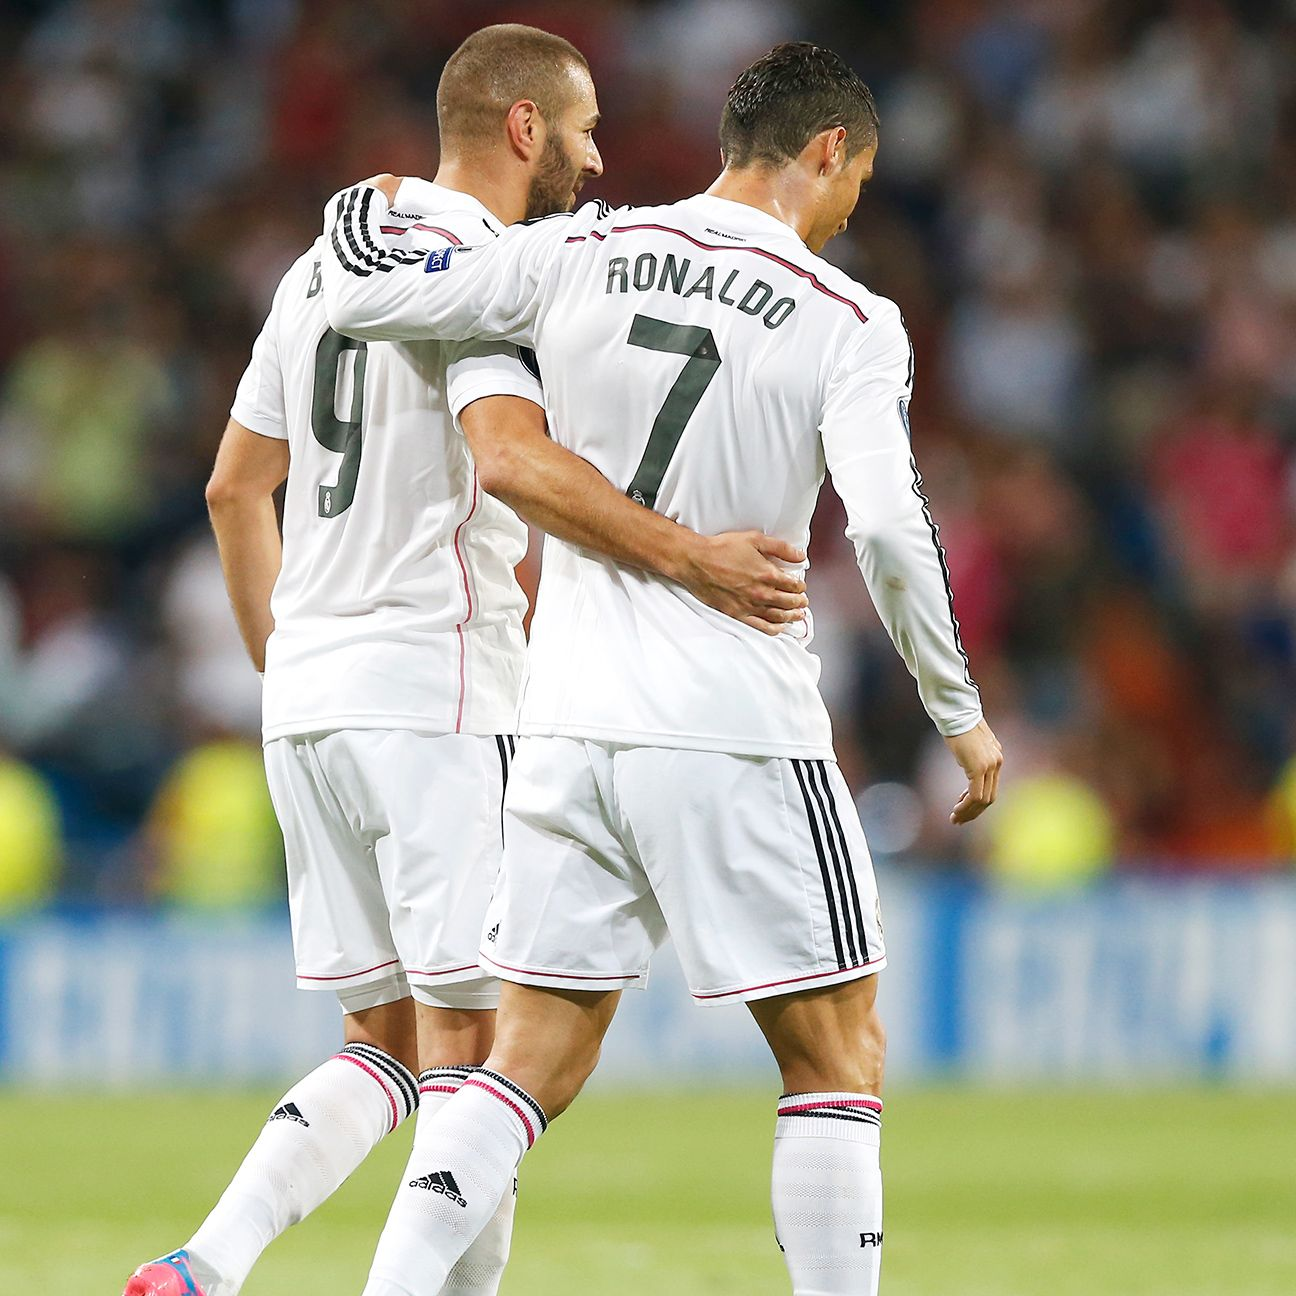 Karim Benzema's struggles in front of goal could result in a position change with Cristiano Ronaldo.